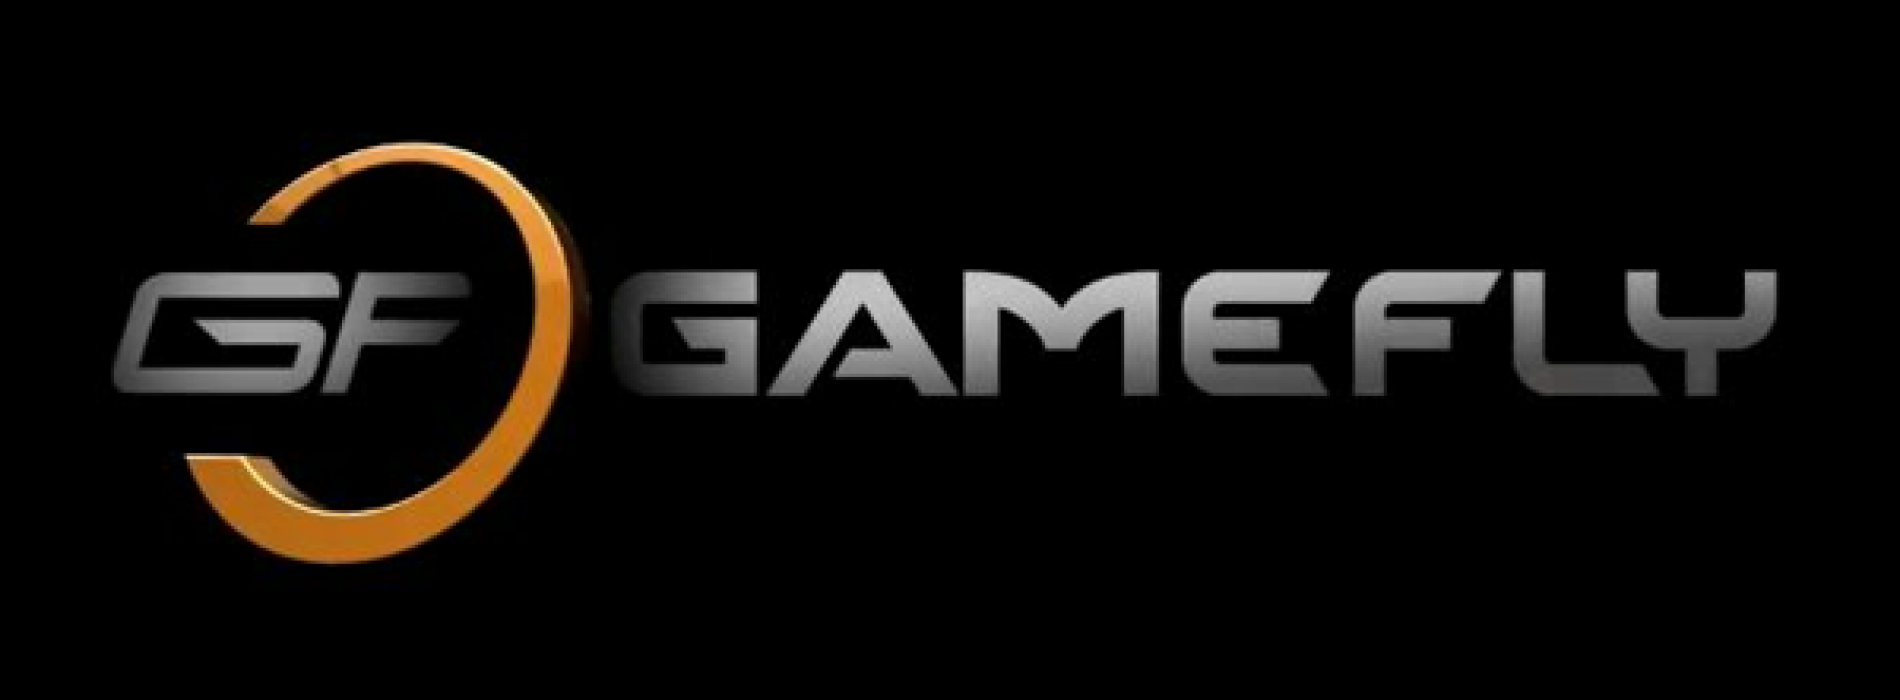 GameFly to open GameStore for Android by end of year